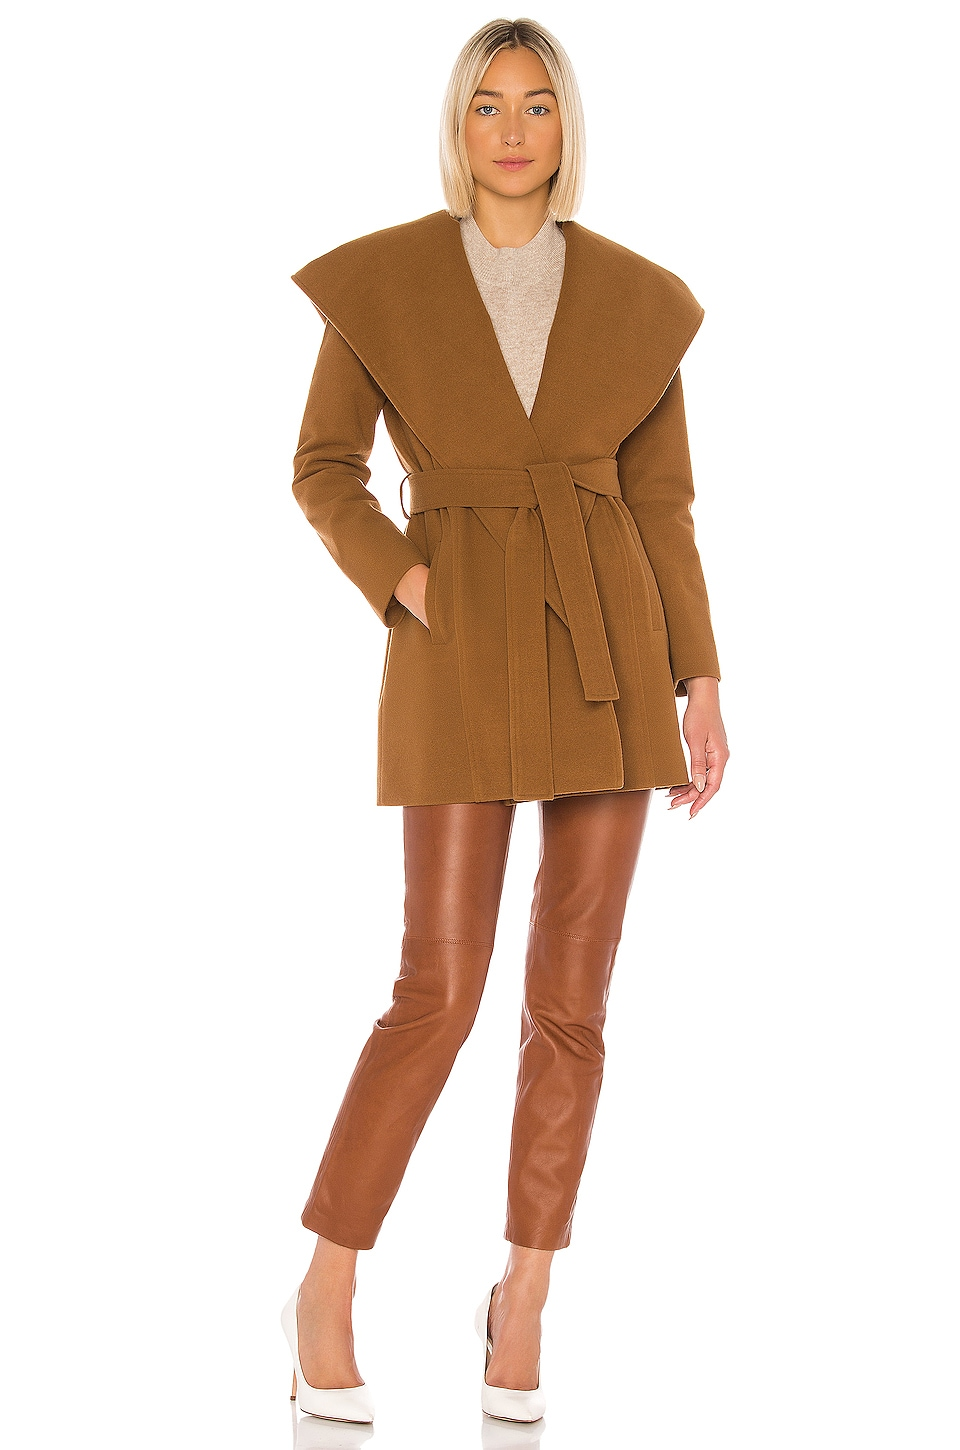 BB Dakota JACK by BB Dakota Take Cover Coat in Camel